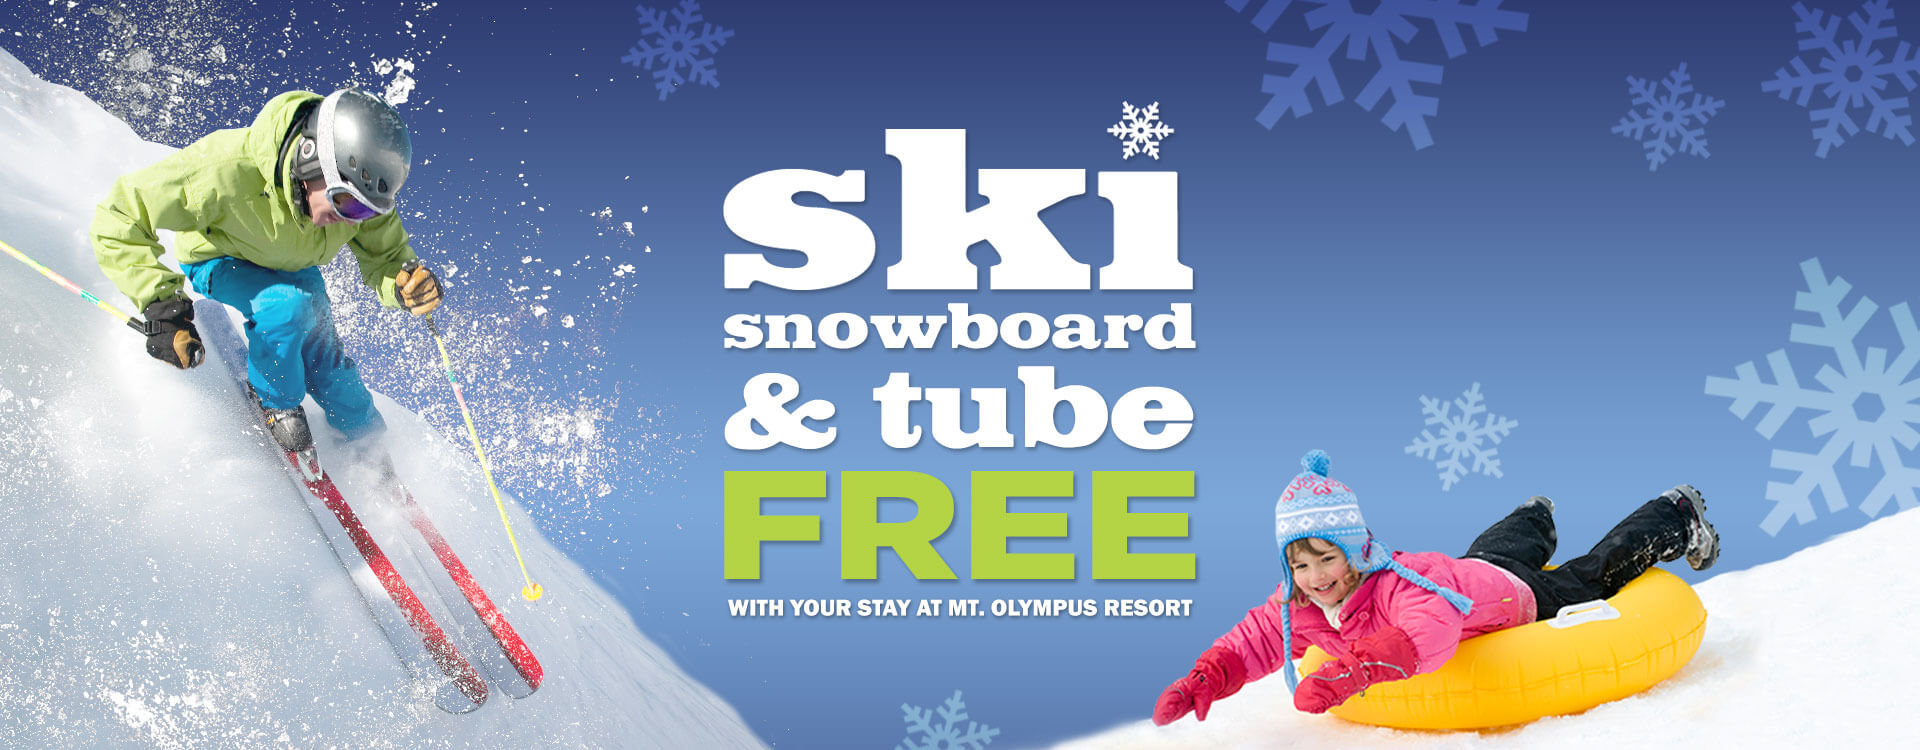 Free Tubing Skiing and Snowboarding with stay